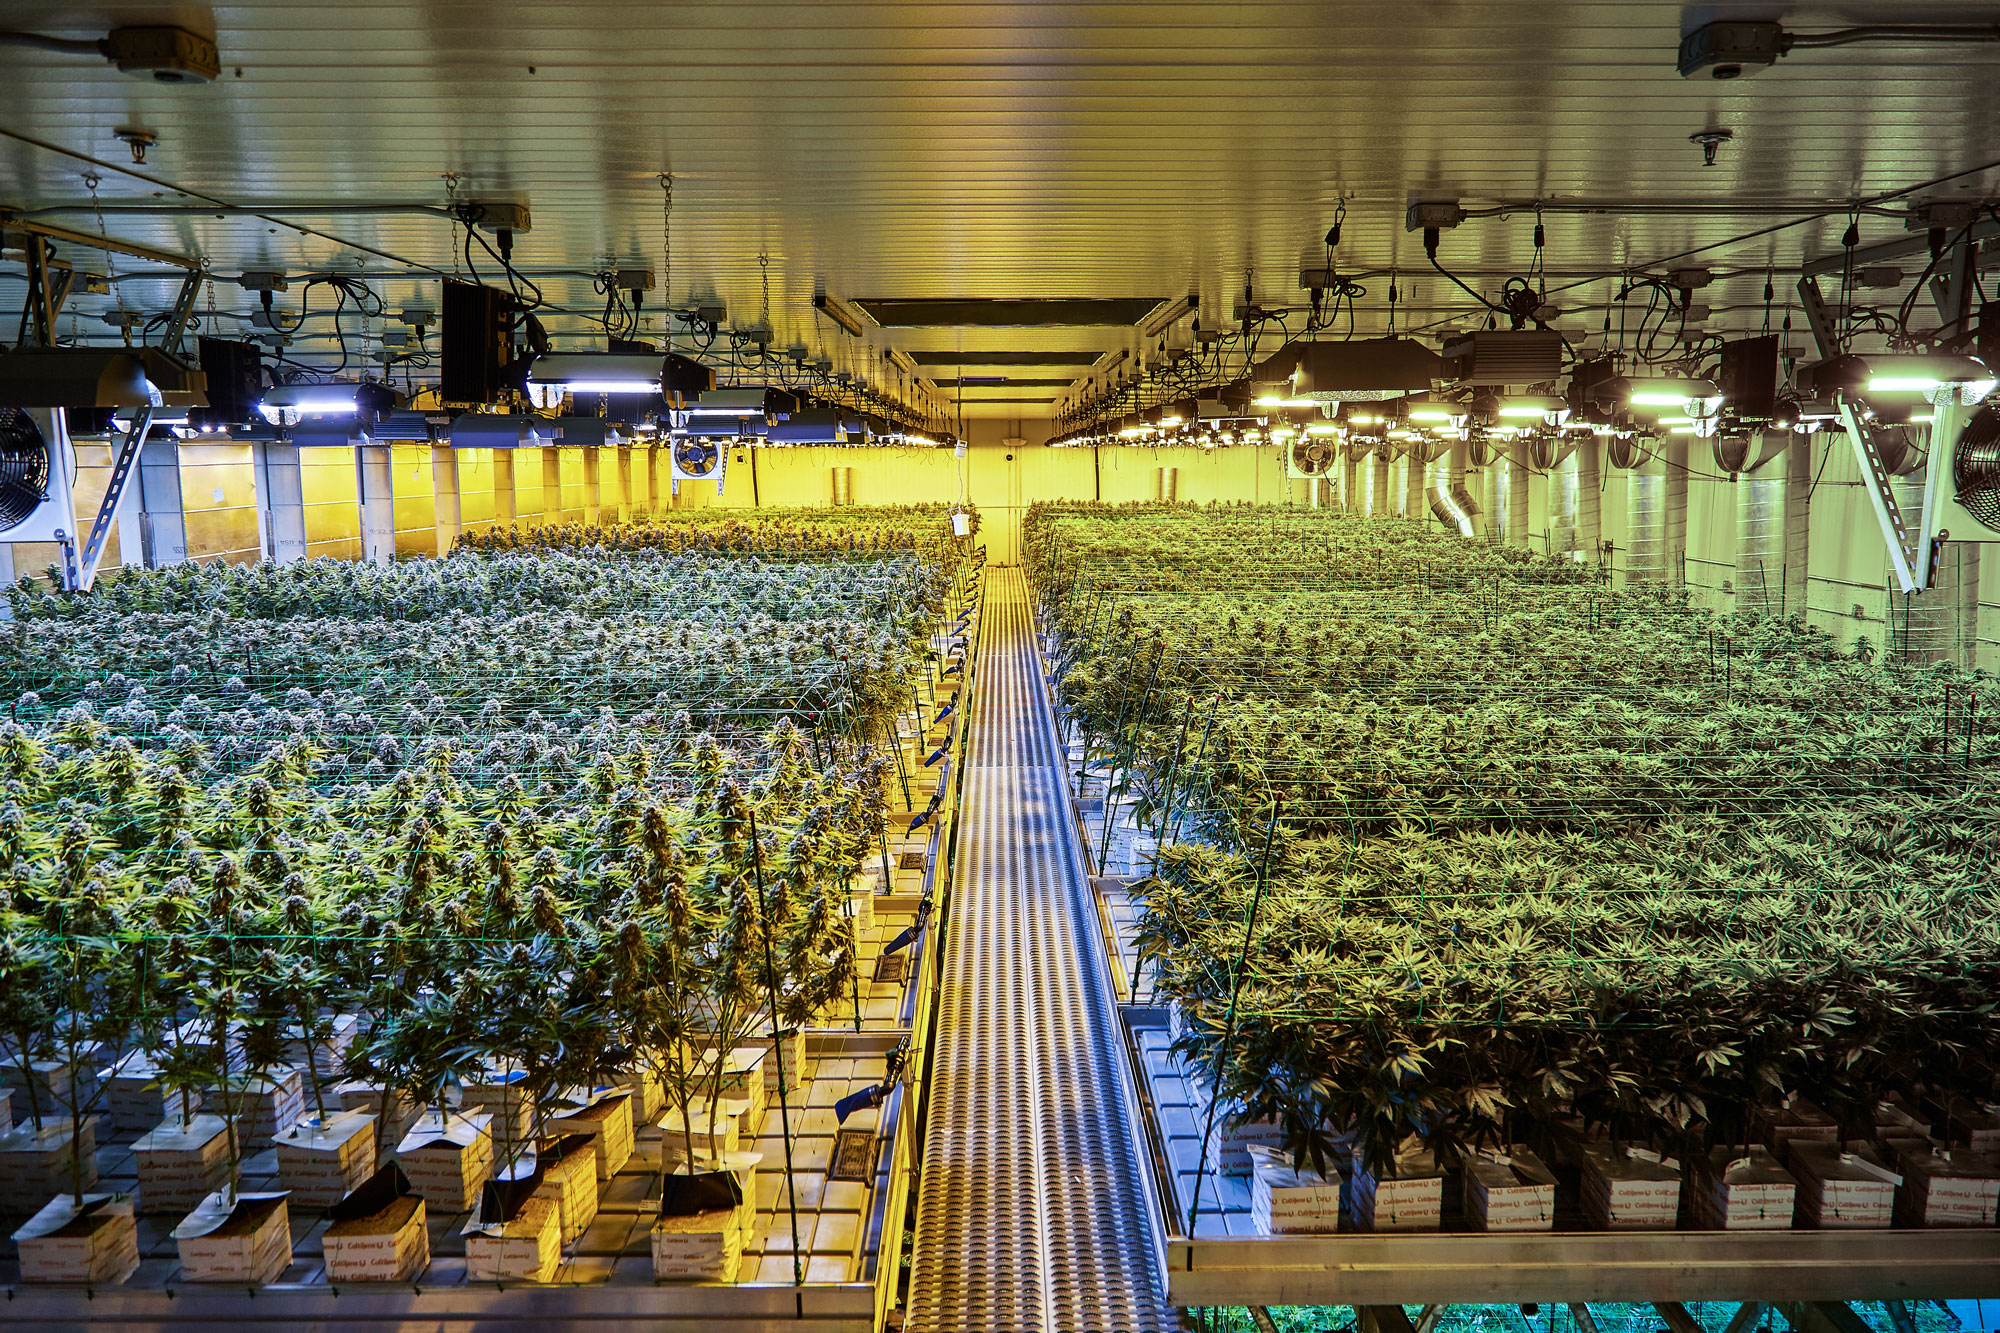 Cultivation_Harmony_Dispensary_Cannabis_Marijuana_02.jpg